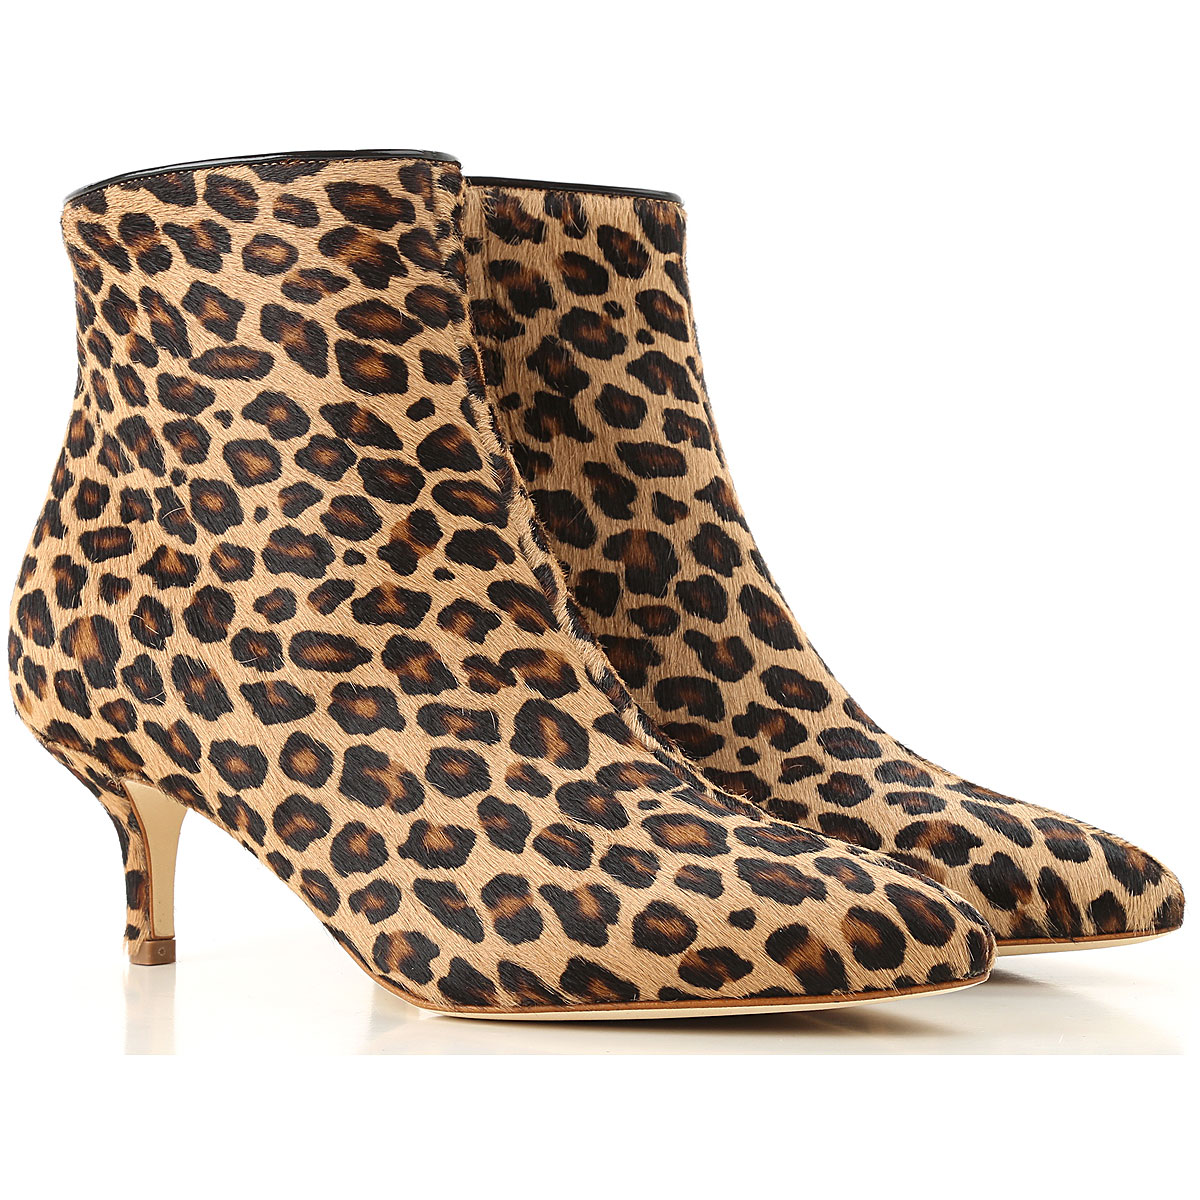 Image of Polly Plume Boots for Women, Booties, Camel, Fur, 2017, 10 6 7 8 9